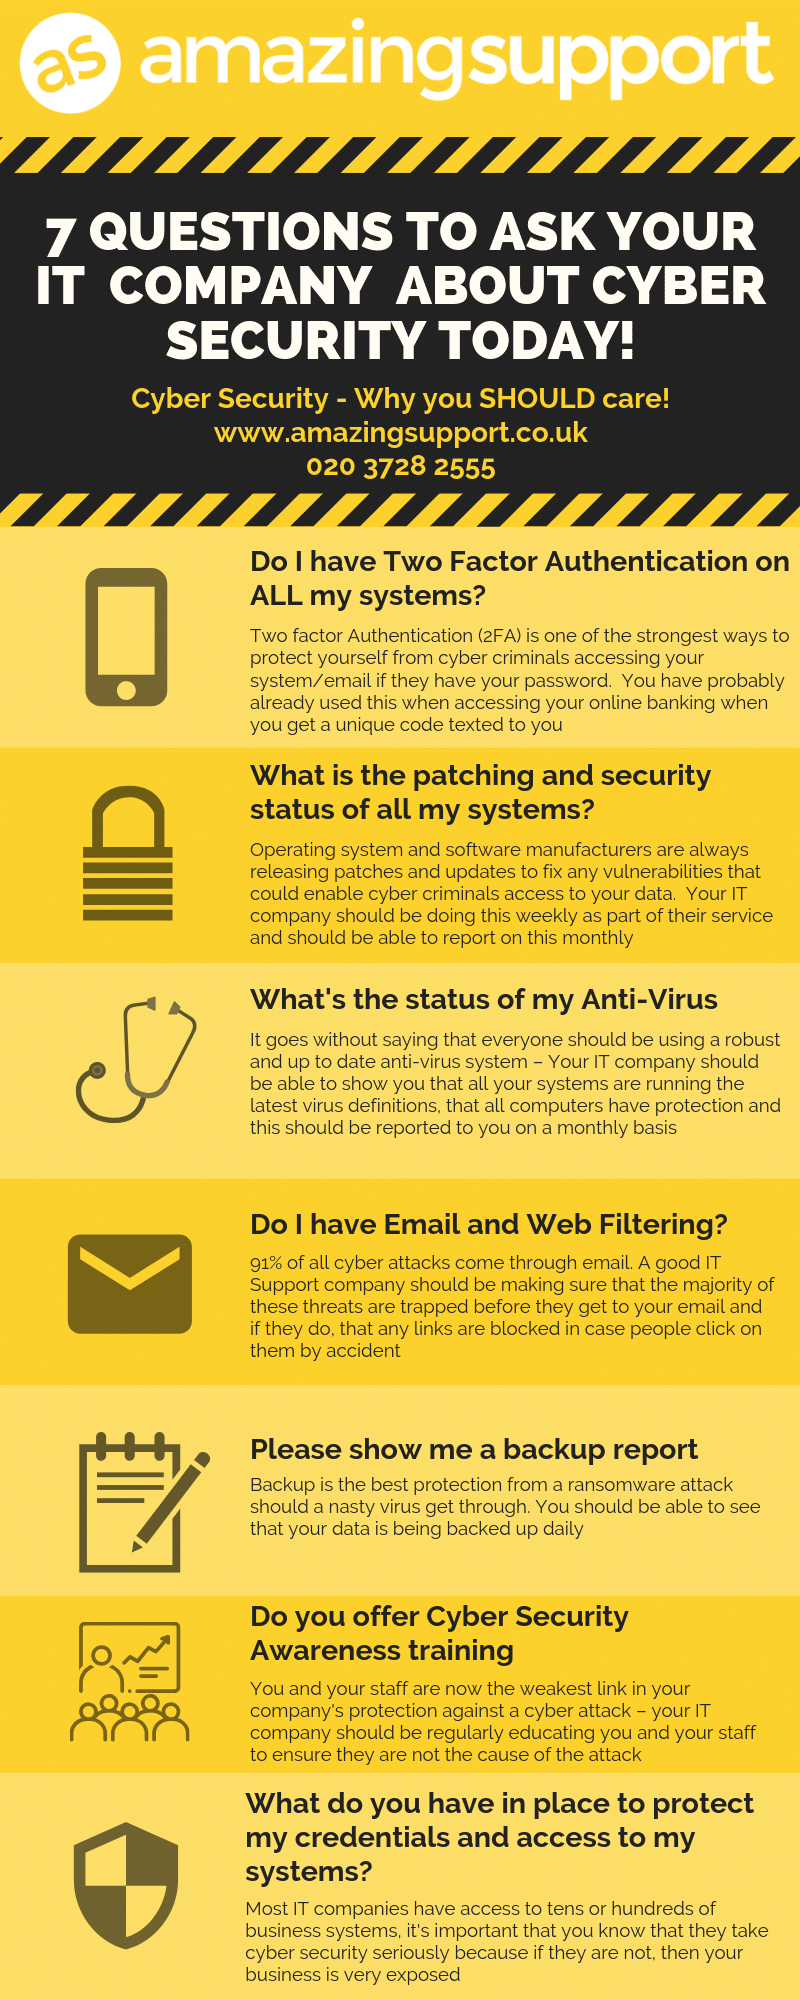 Questions To Ask Your IT Company About Cyber Security Today – Infographic